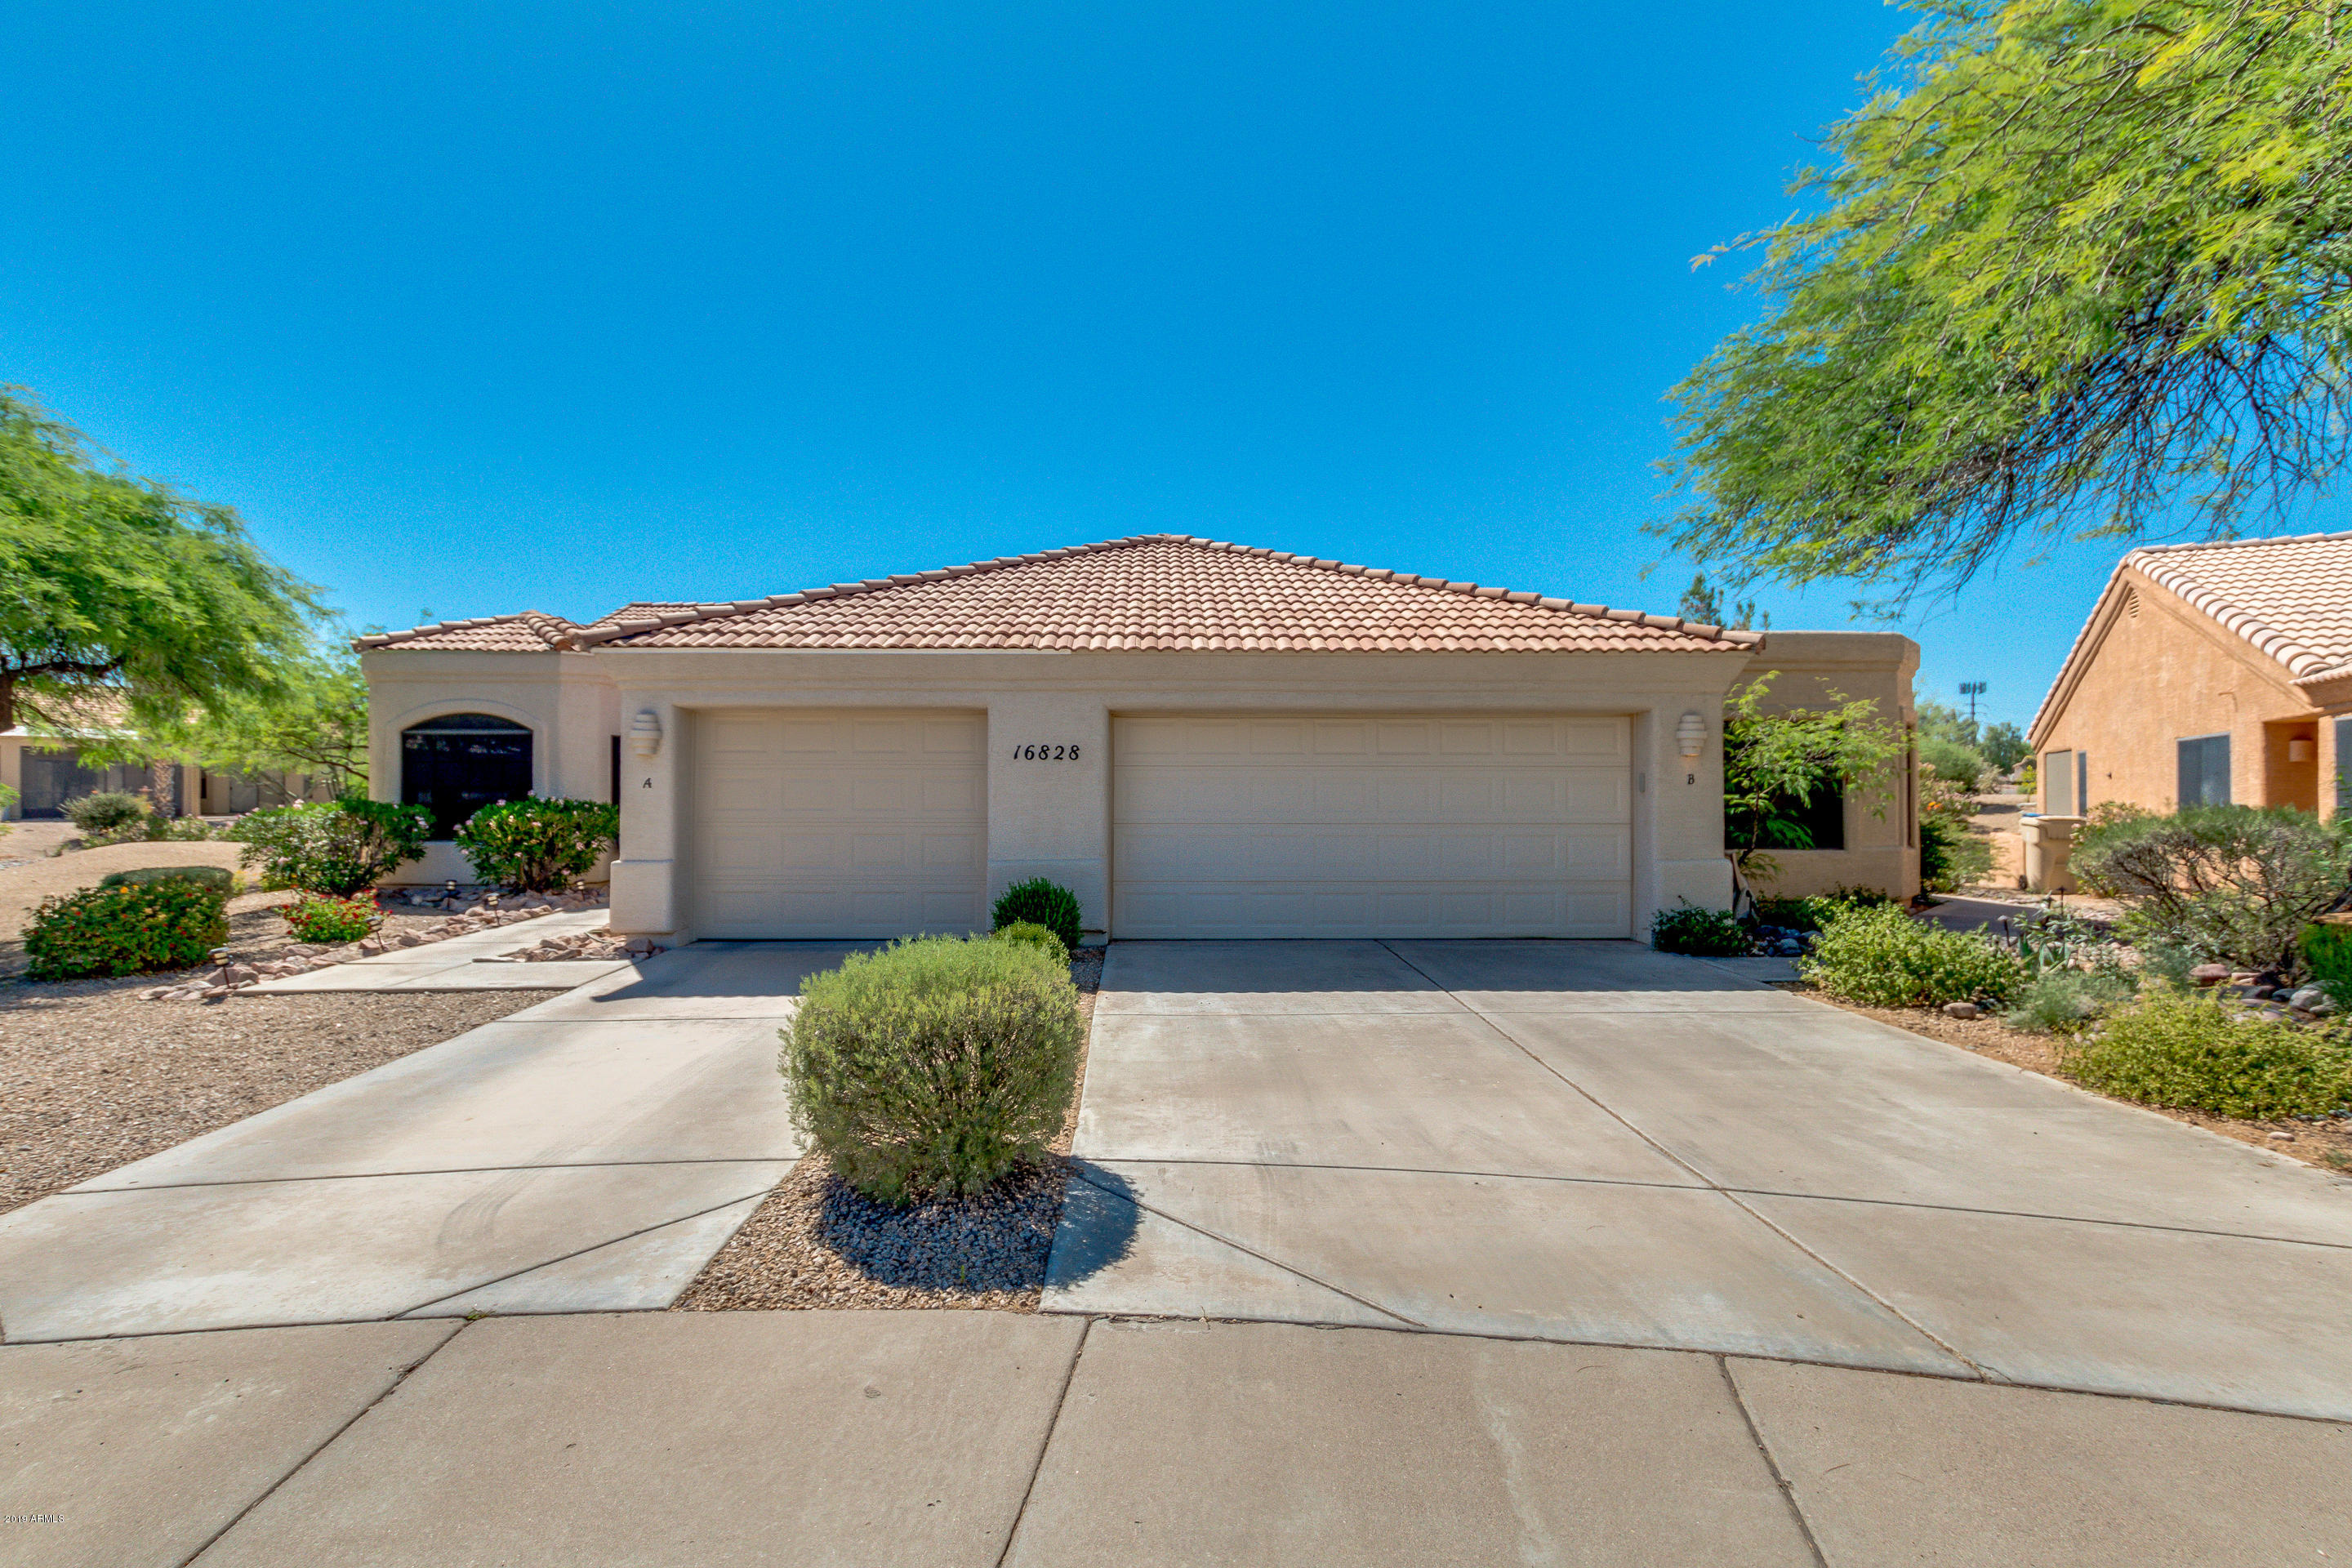 Photo of 16828 E MIRAGE CROSSING Court #B, Fountain Hills, AZ 85268